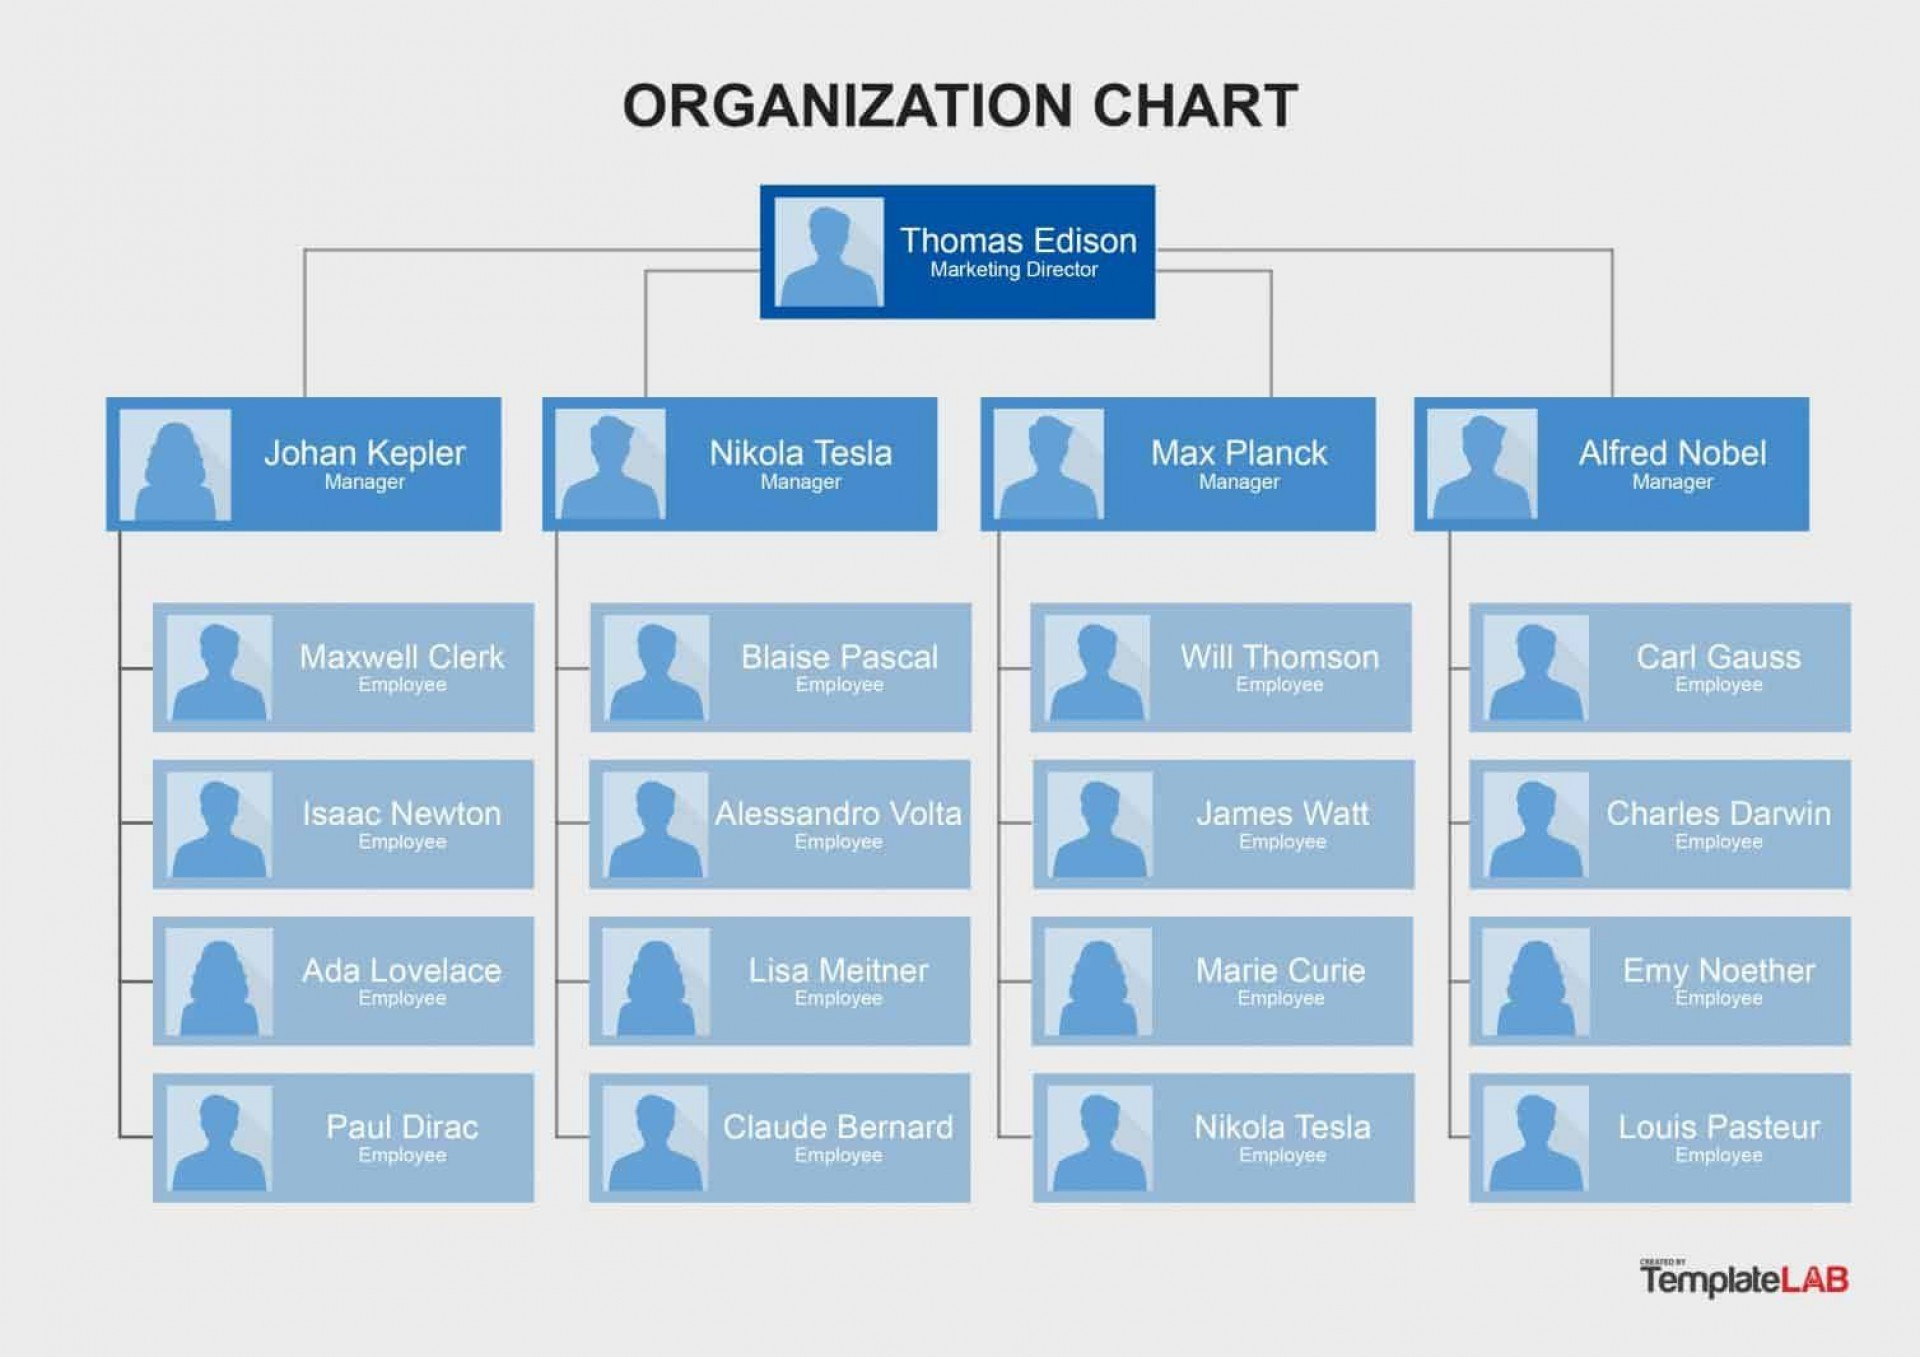 009 Rare Organizational Chart Template Excel Image  Organization Download Org1920